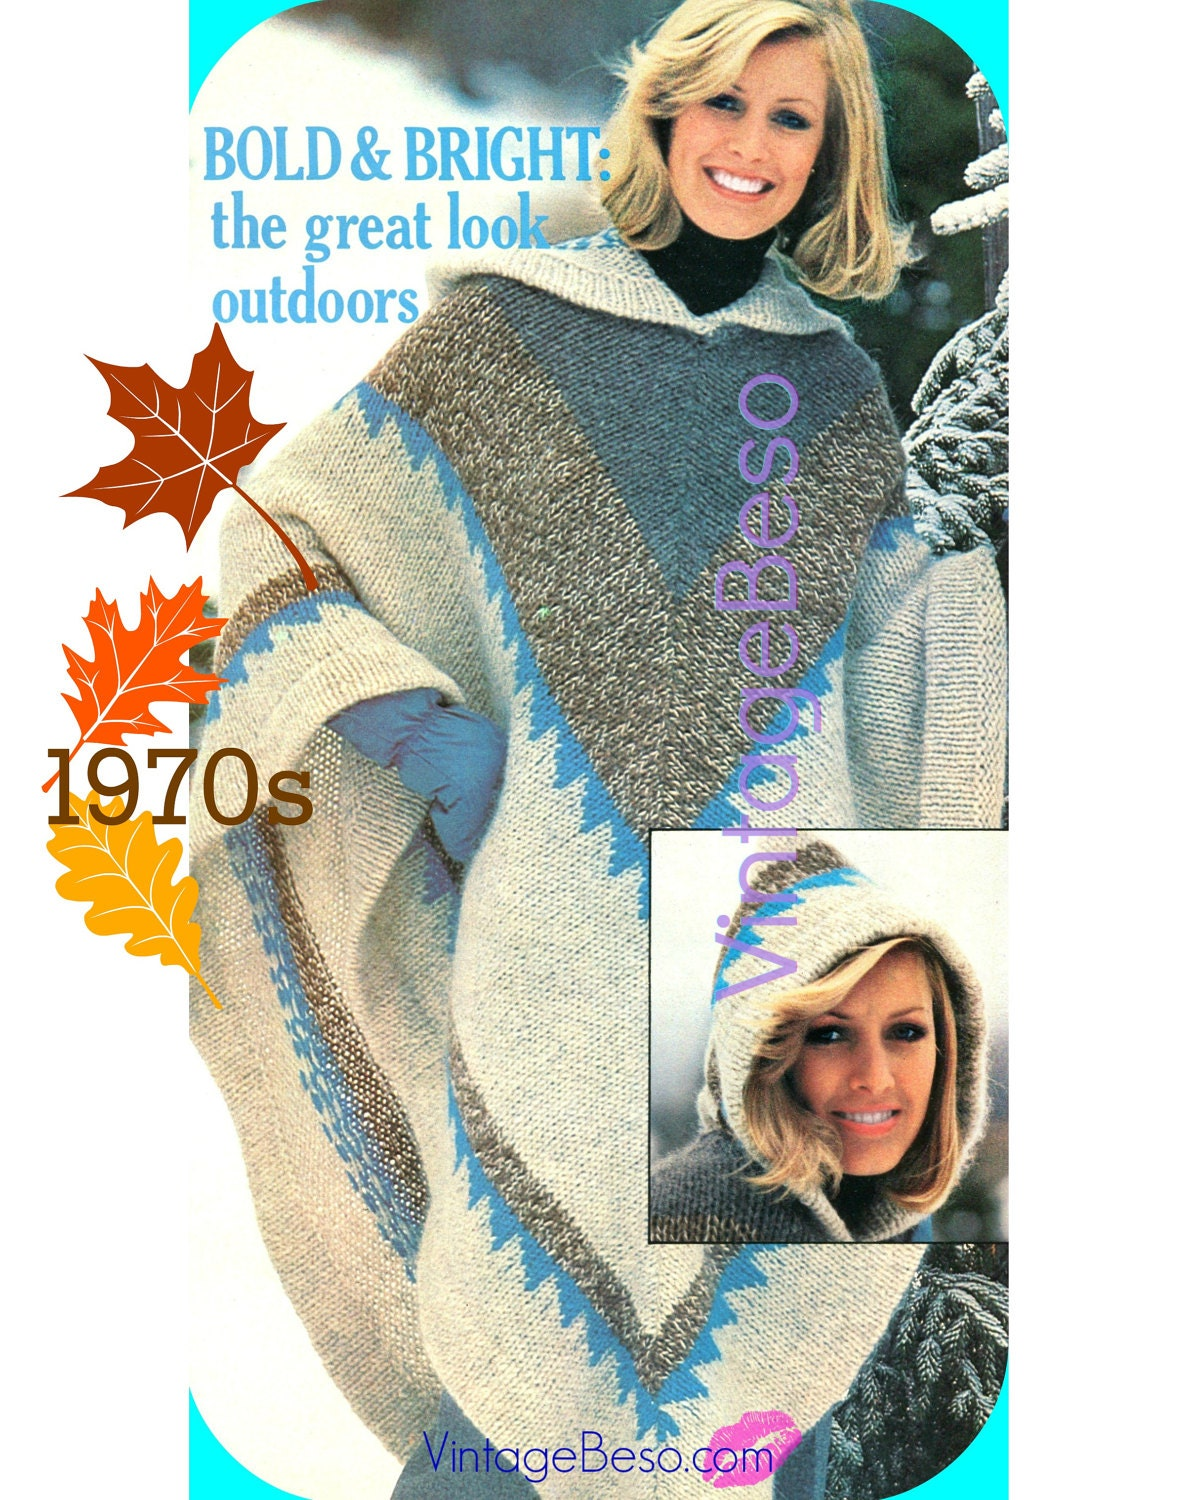 Vintage hooded poncho knitting pattern 1970s vintage poncho vintage hooded poncho knitting pattern 1970s vintage poncho pattern hooded poncho with indian diamond motif digital pattern pdf pattern bankloansurffo Image collections